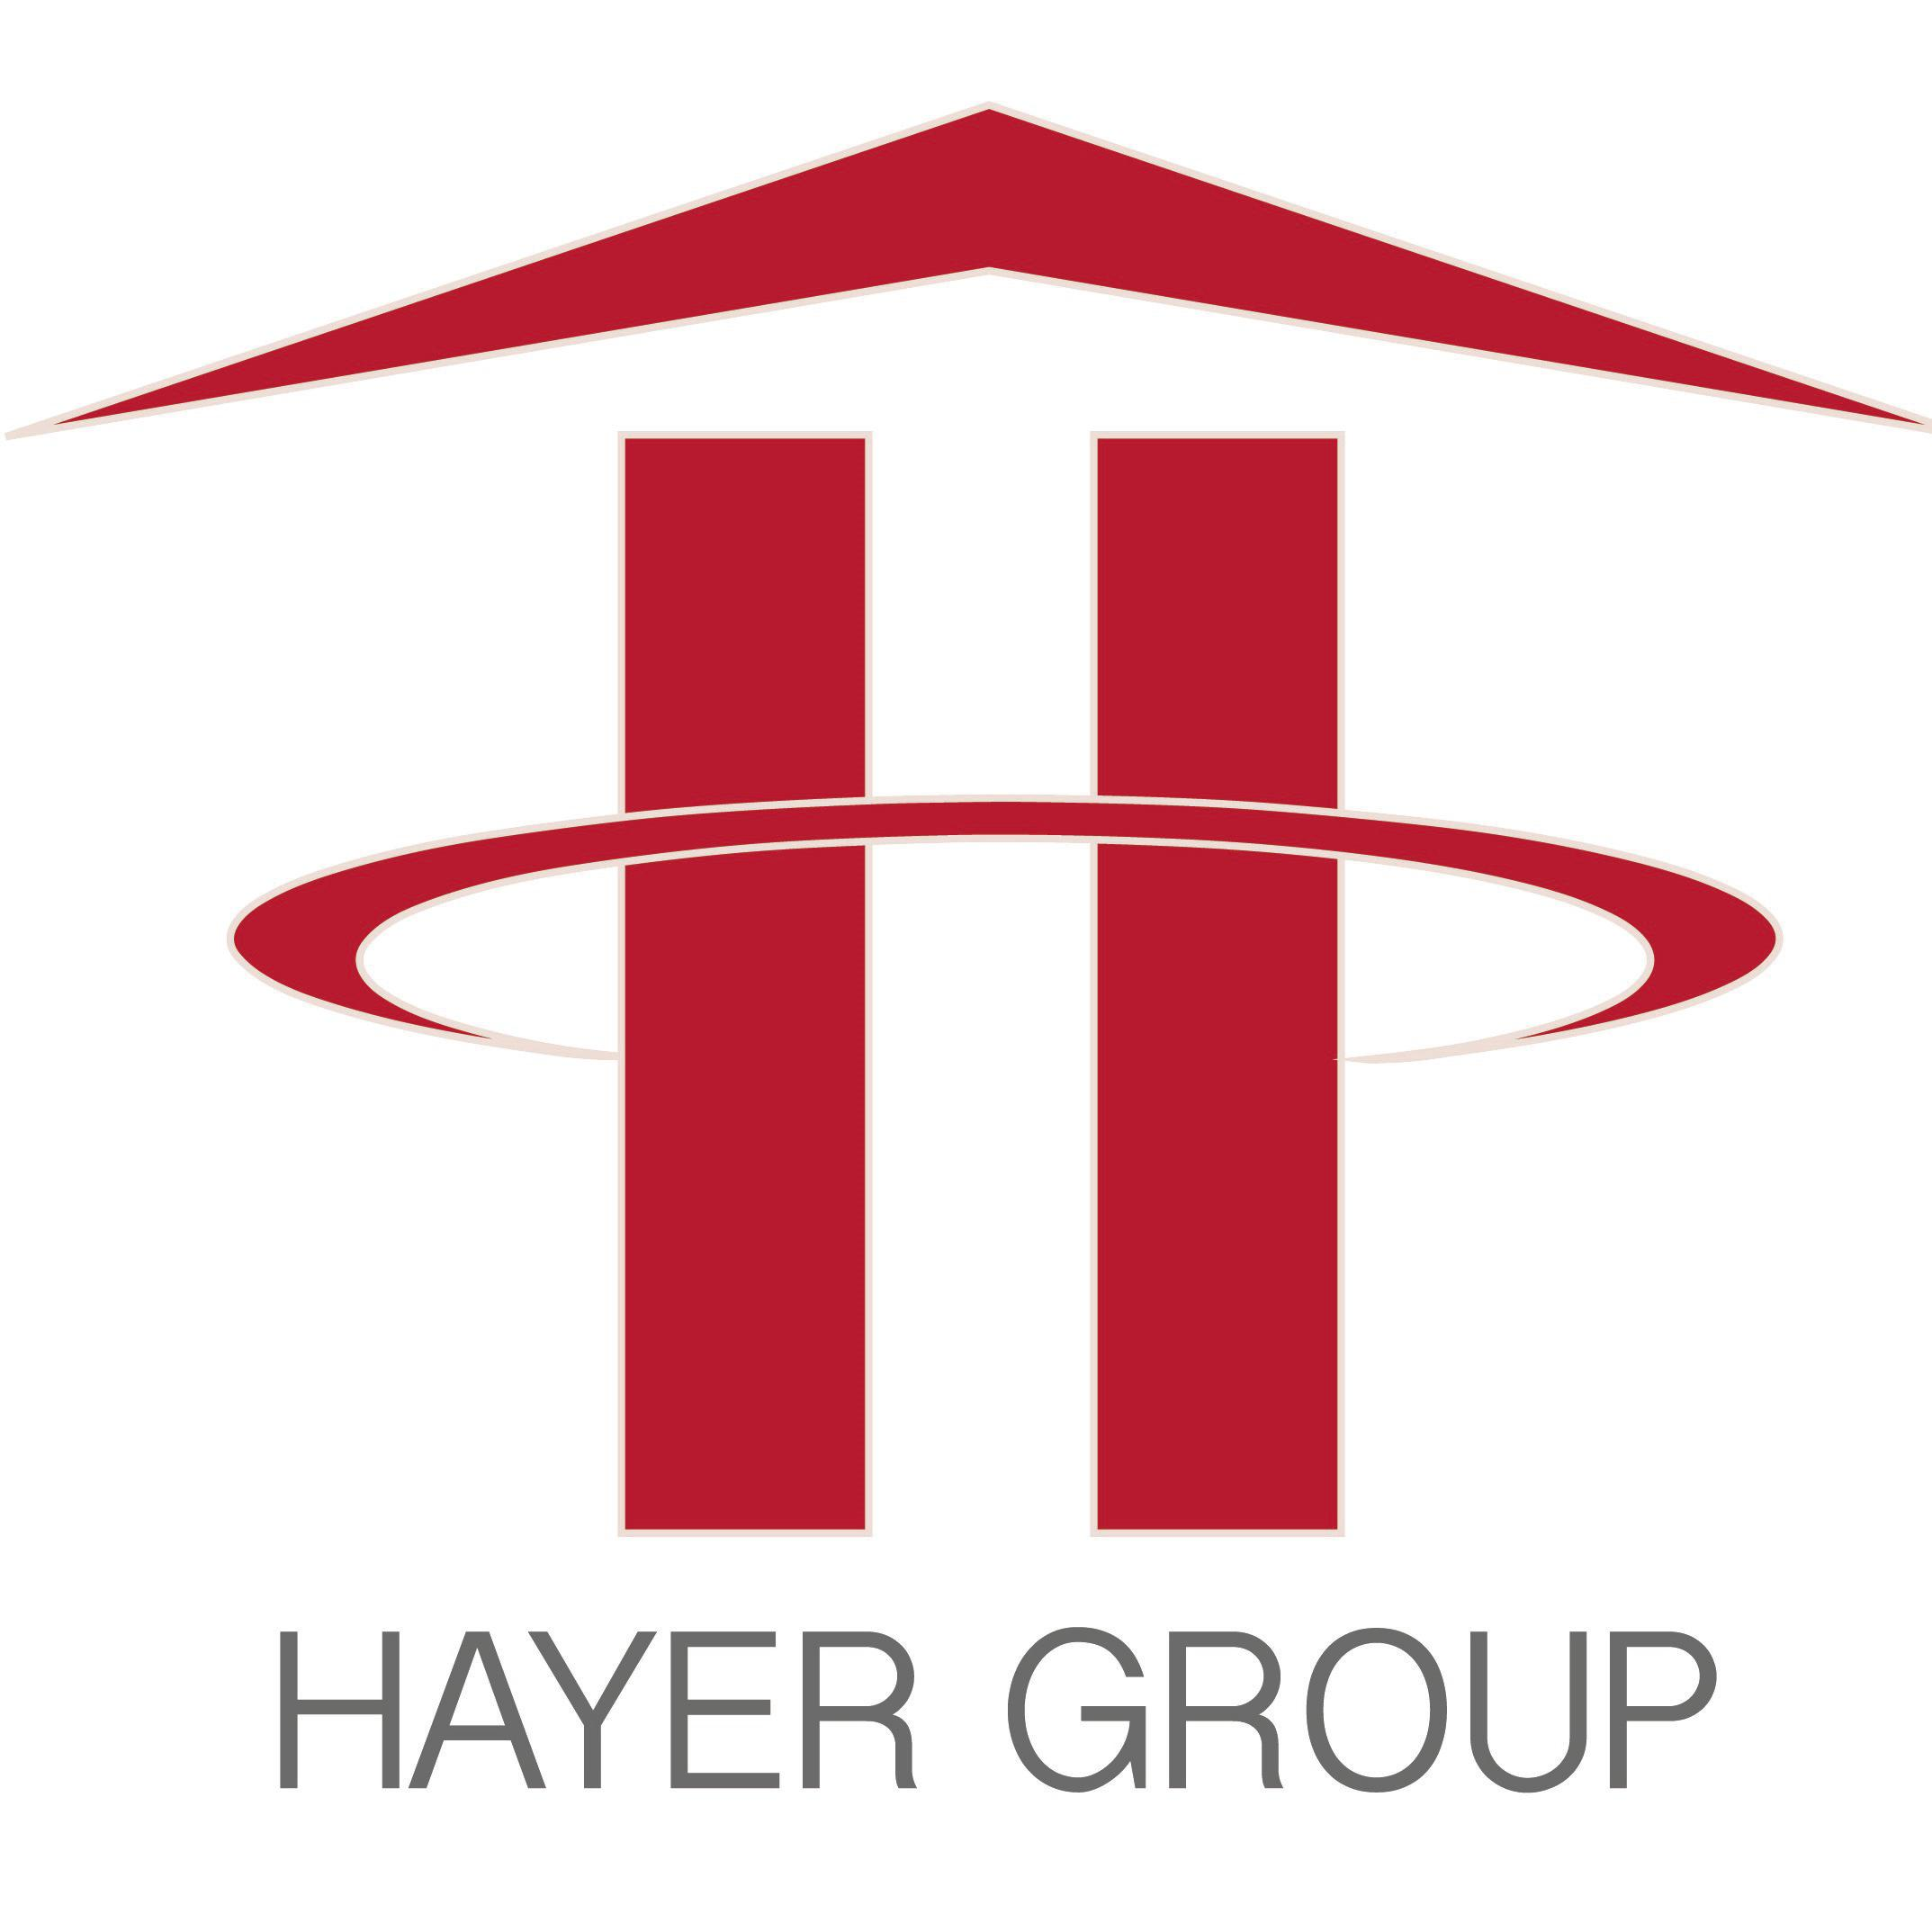 The Hayer Group